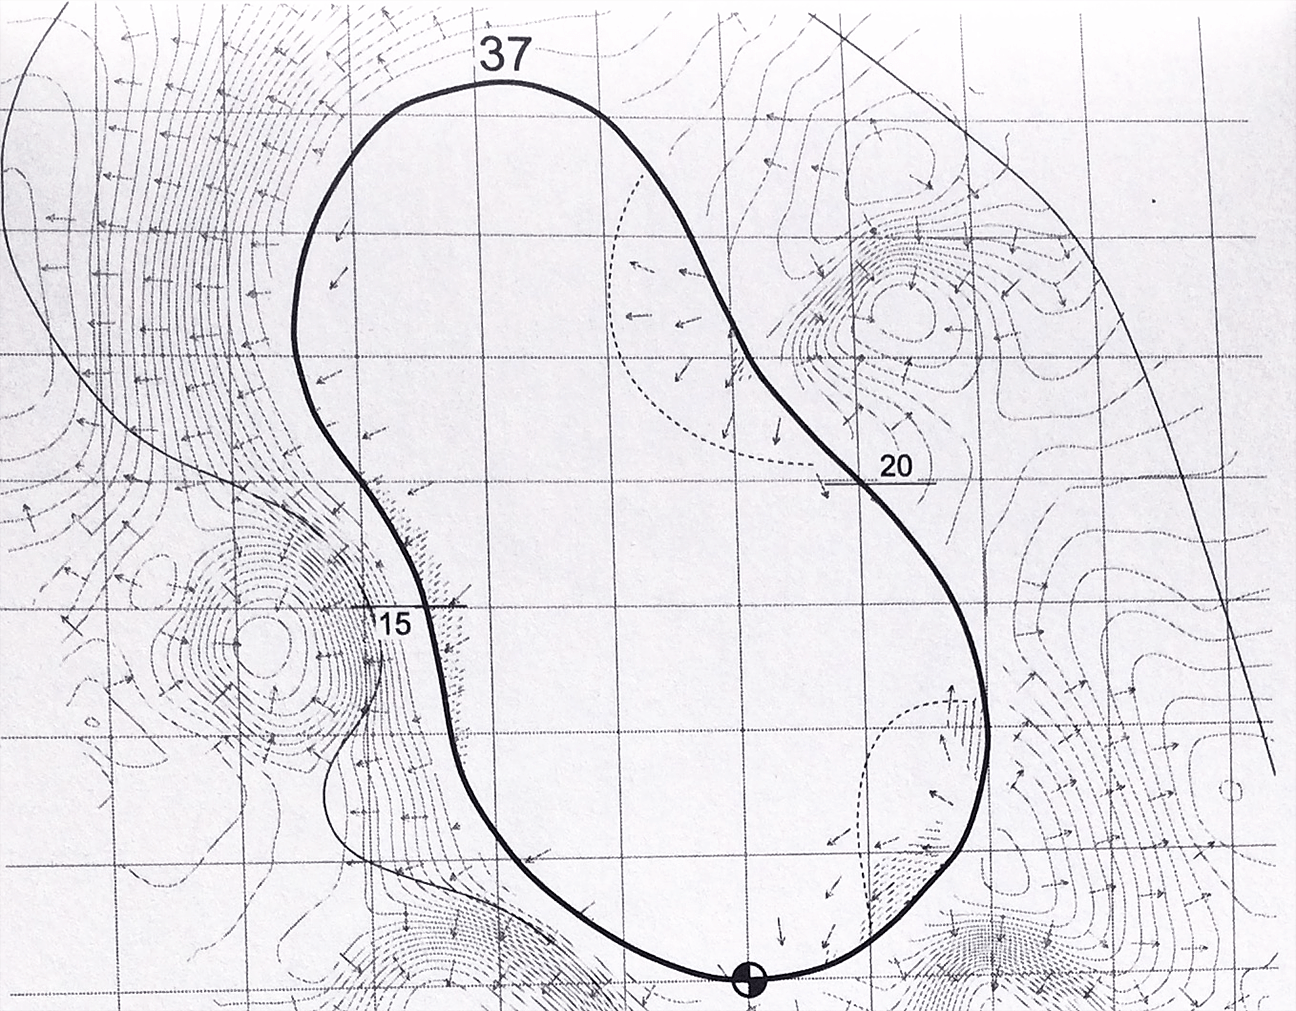 Notes From The Yardage Book The Key To 16 At The Waste